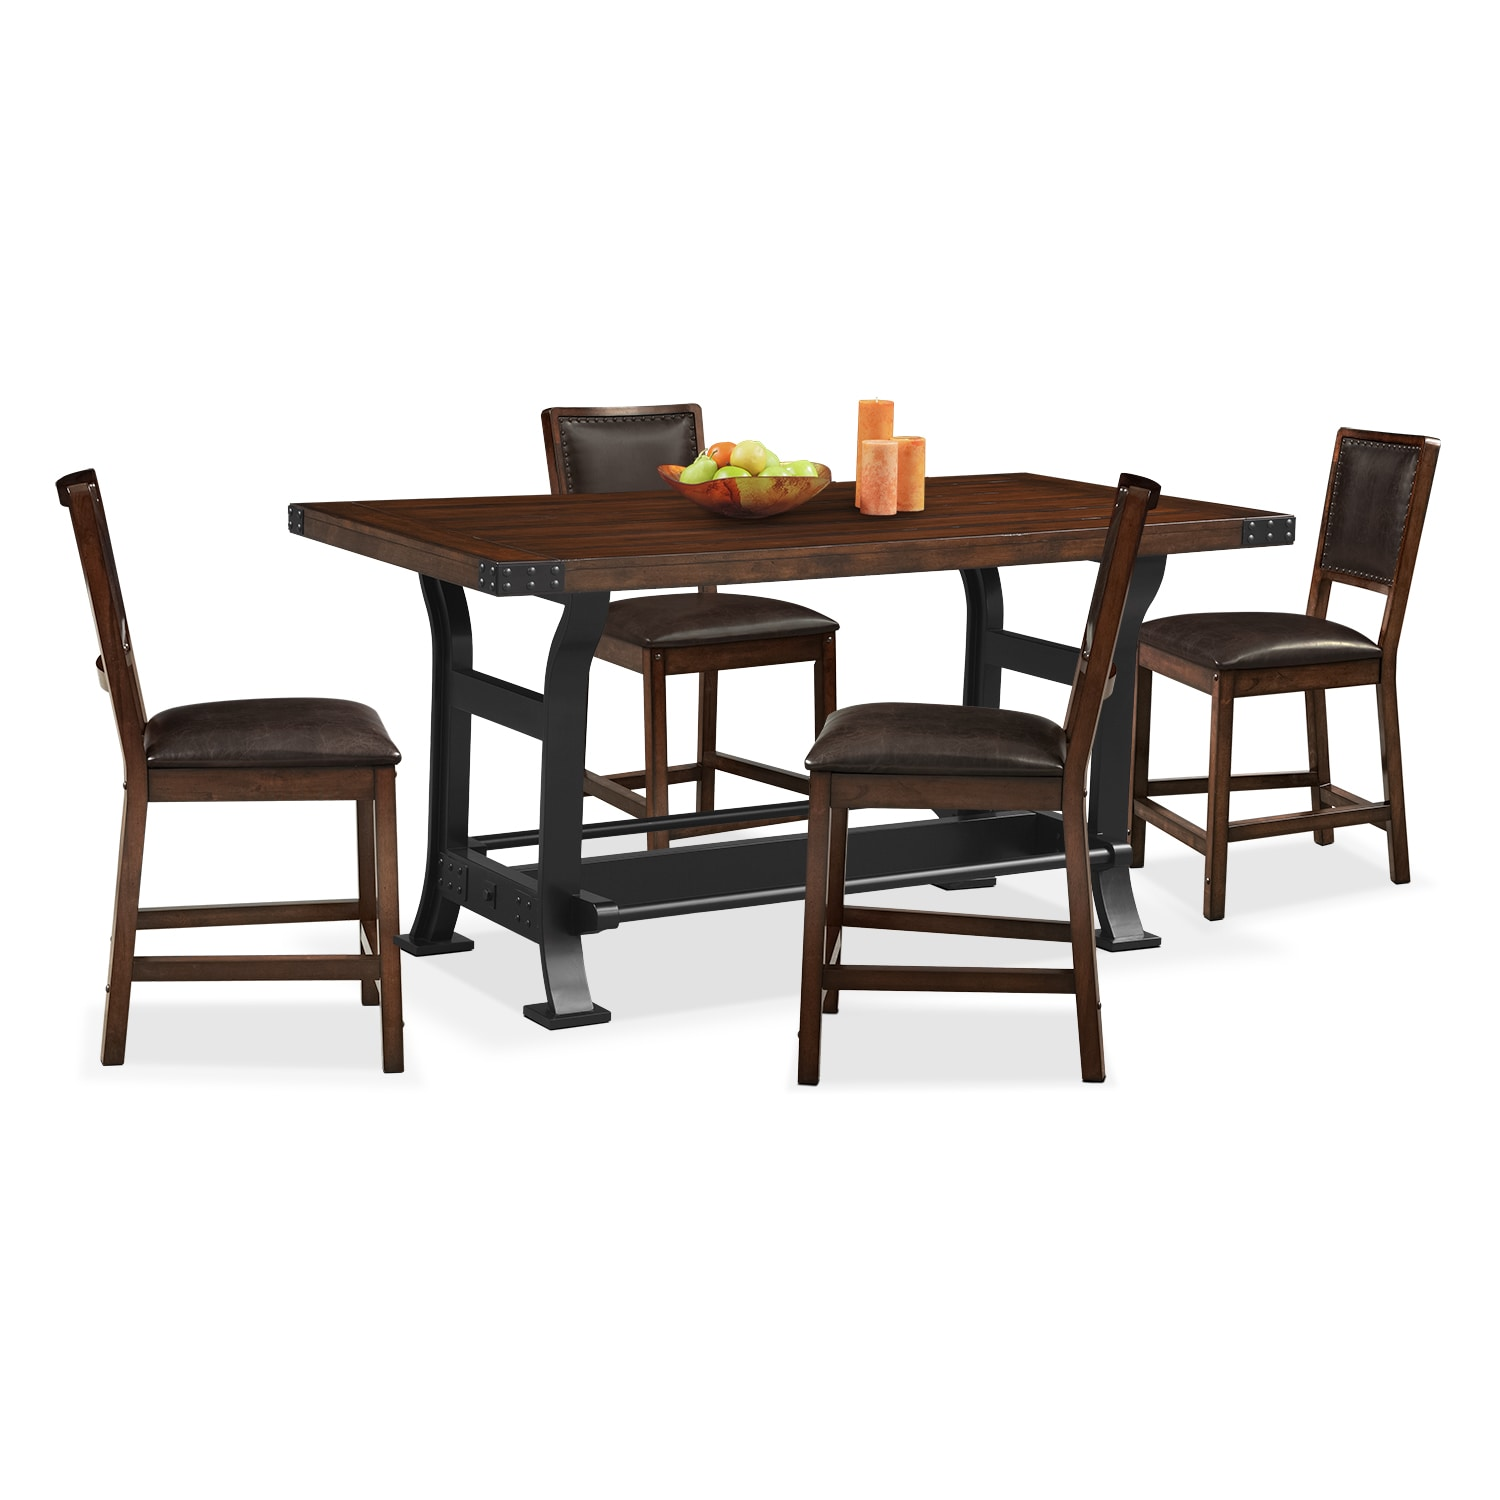 Newcastle Counter Height Dining Table And 4 Side Chairs   Mahogany